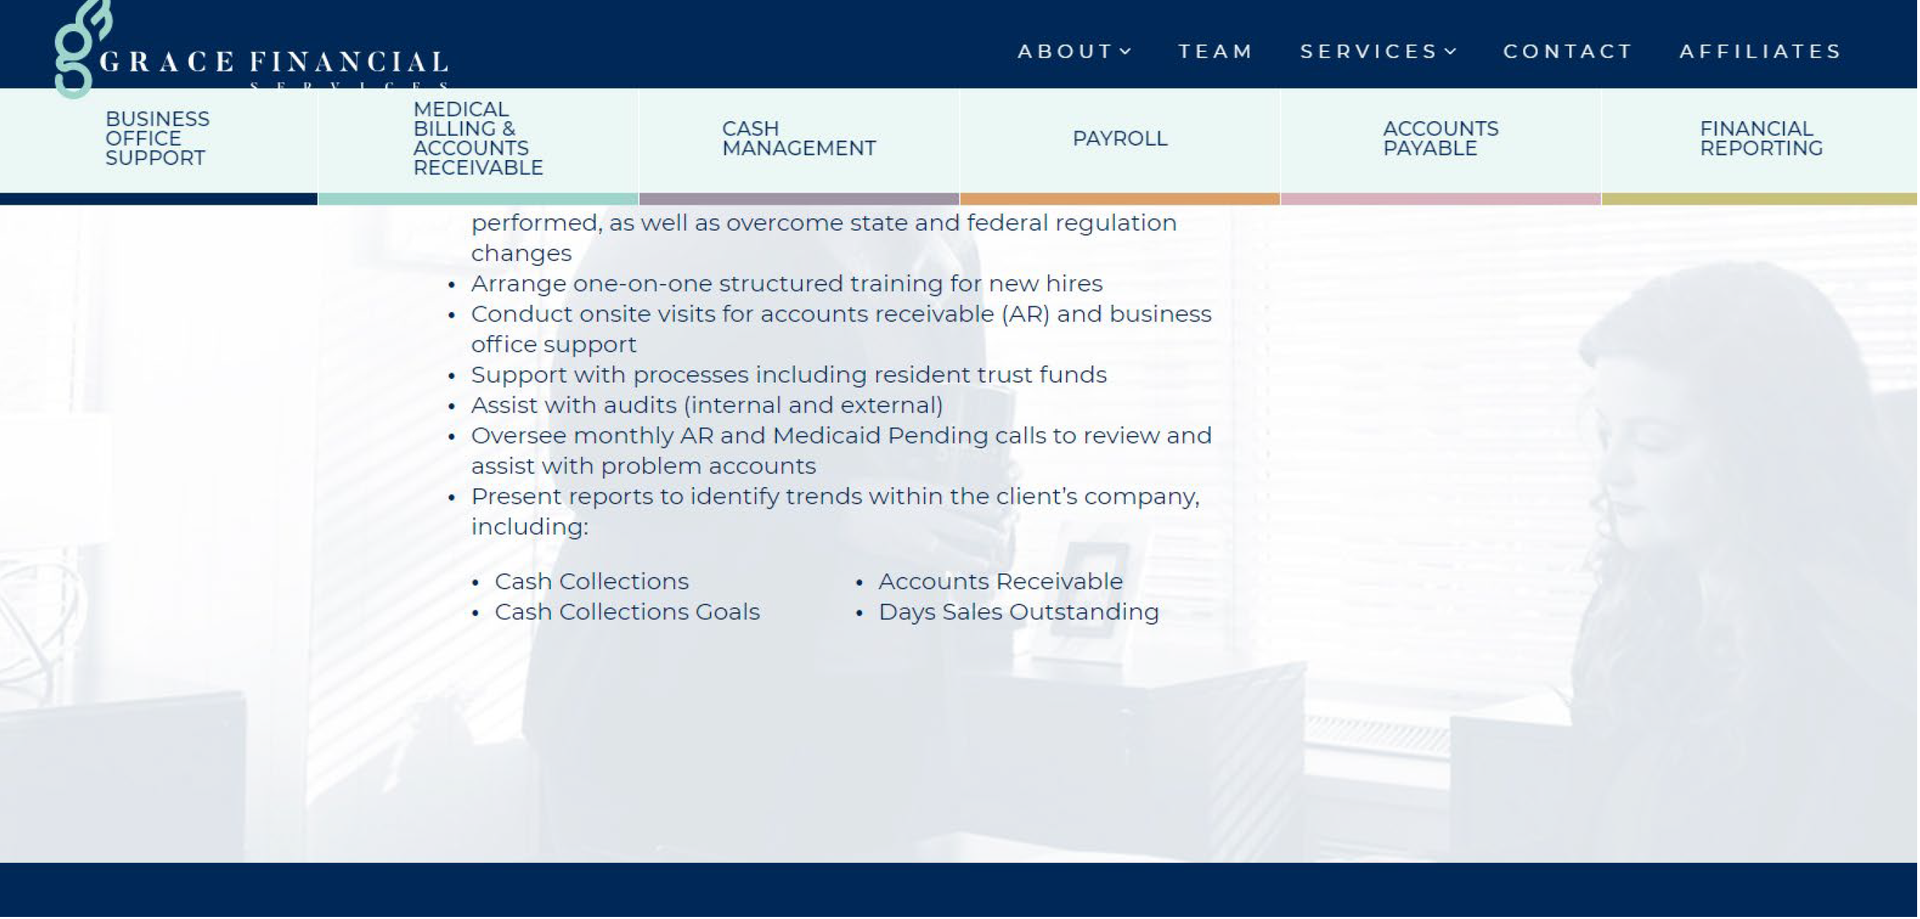 GFS Our Services Page